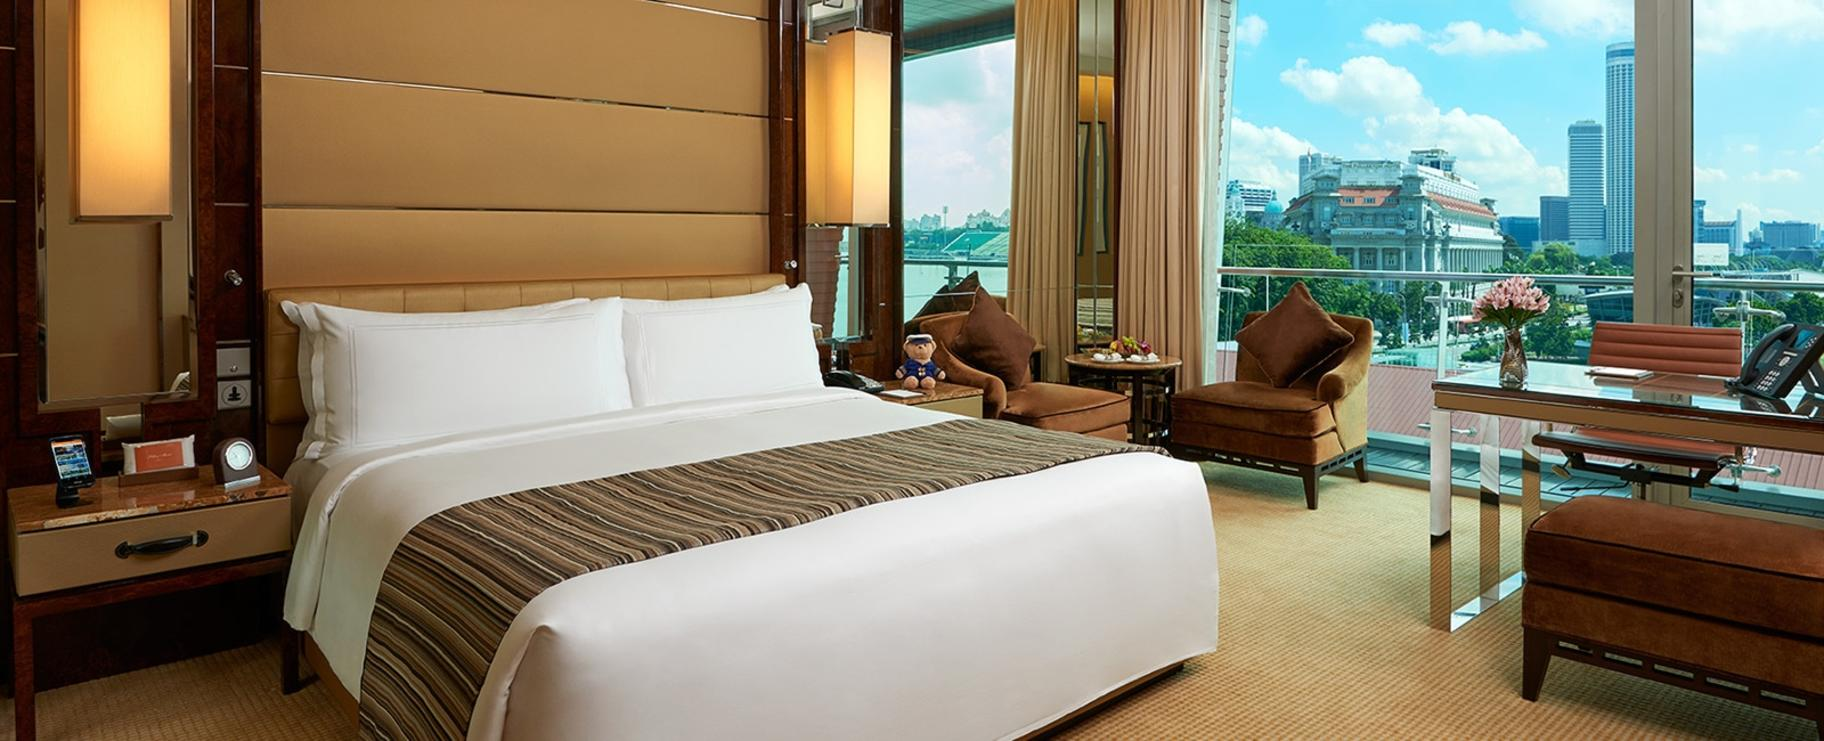 The Premier Room with one king bed and a city view at the hotel